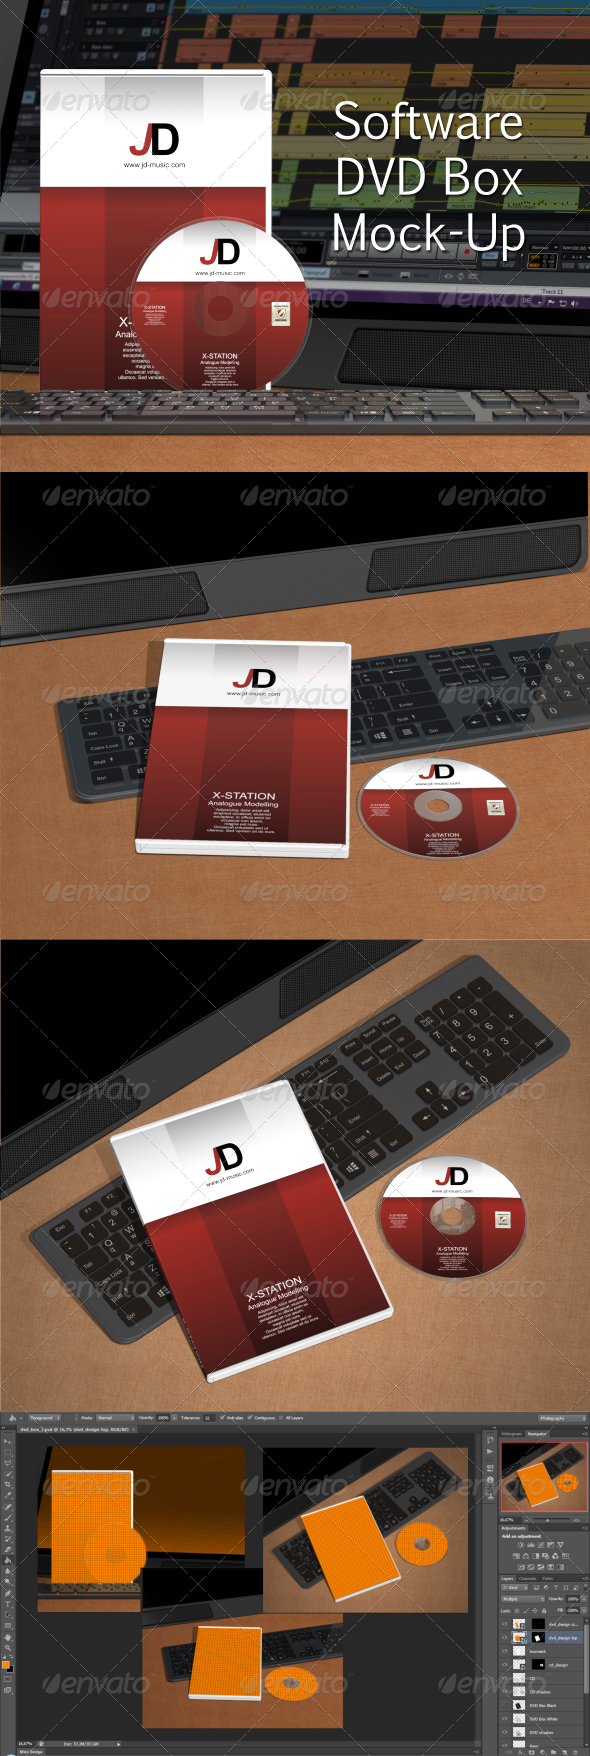 Software DVD Box Mock-Up - Discs Packaging